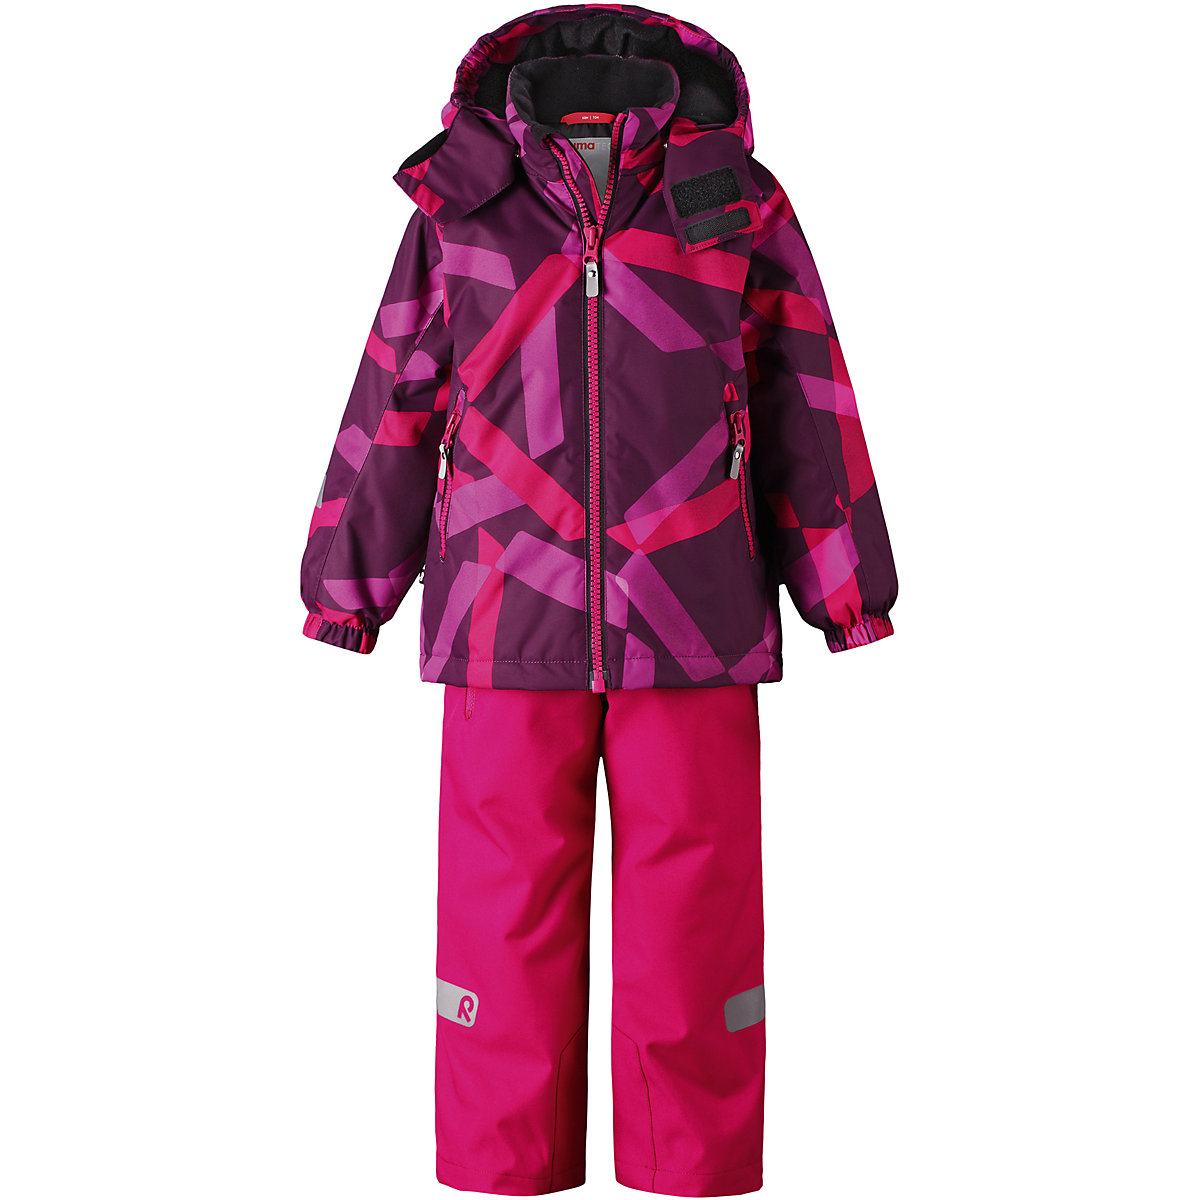 REIMA Babys Sets 8689207 for girls Polyester Baby Kit girl Jacket and pants